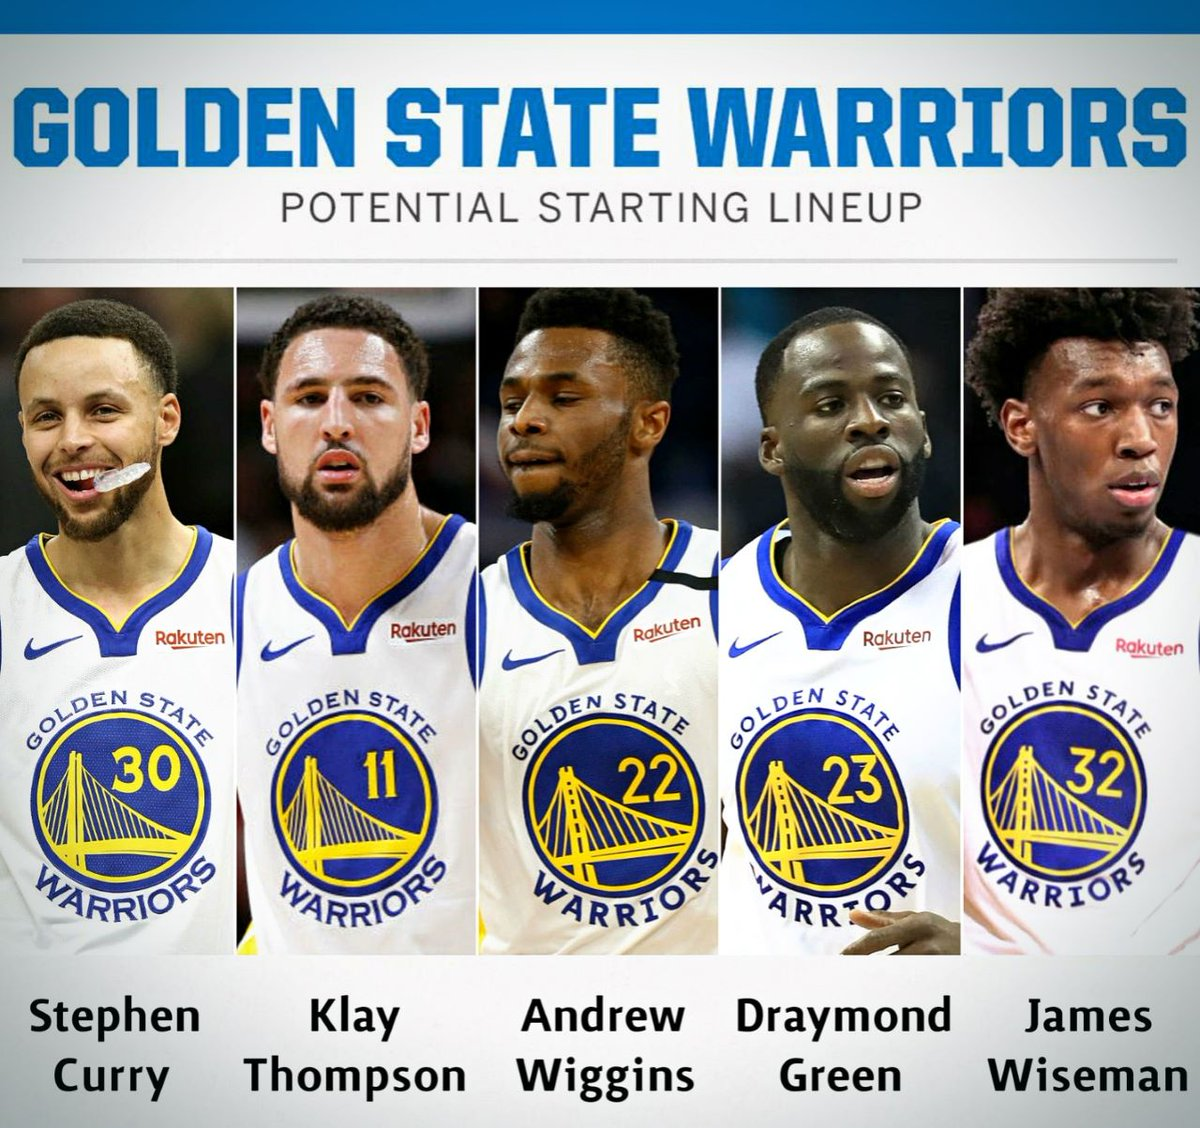 Potential 2020-2021 @warriors starting lineup: PG - @StephenCurry30  SG - @KlayThompson  SF - @22wiggins  PF - @Money23Green  C - @BigTicket_JW   #DubNation https://t.co/cVpFcQcp1Y